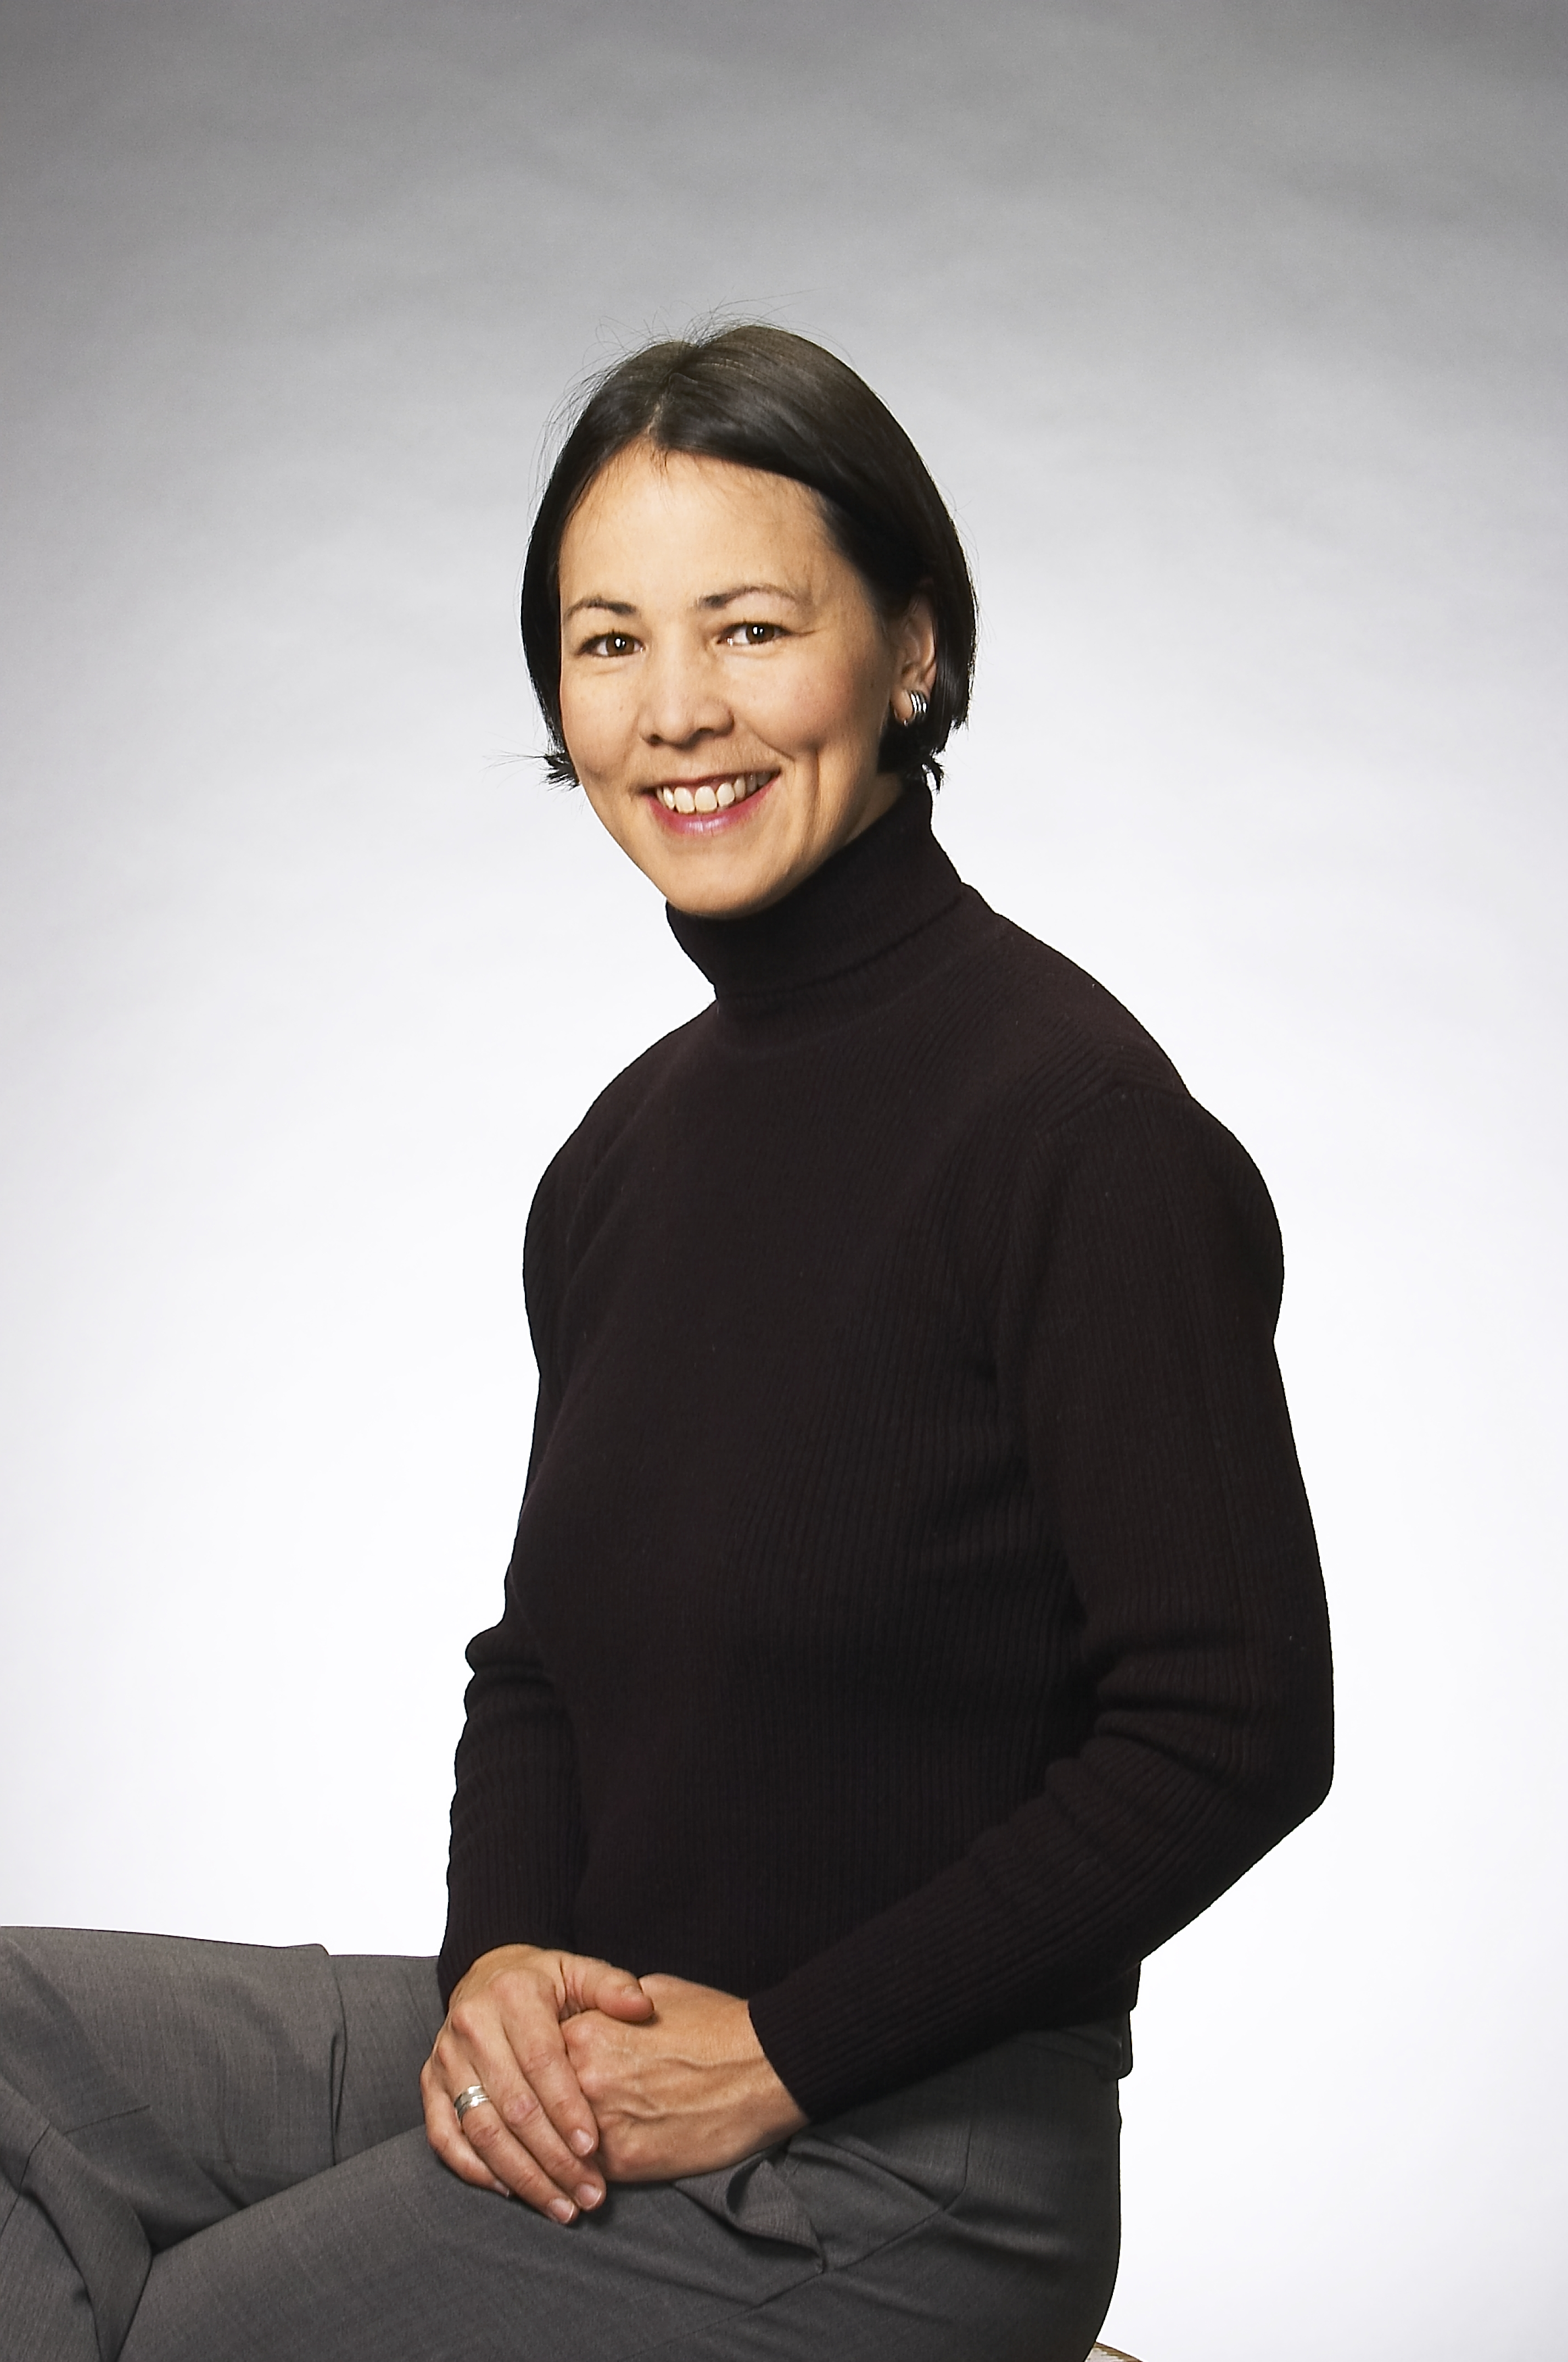 Radio announcer May-Lily Lee sitting on a stool in a pose. She is wearing a long-sleeved black turtle neck and gray pants. She is smiling and her hands are resting one atop the other on her leg.